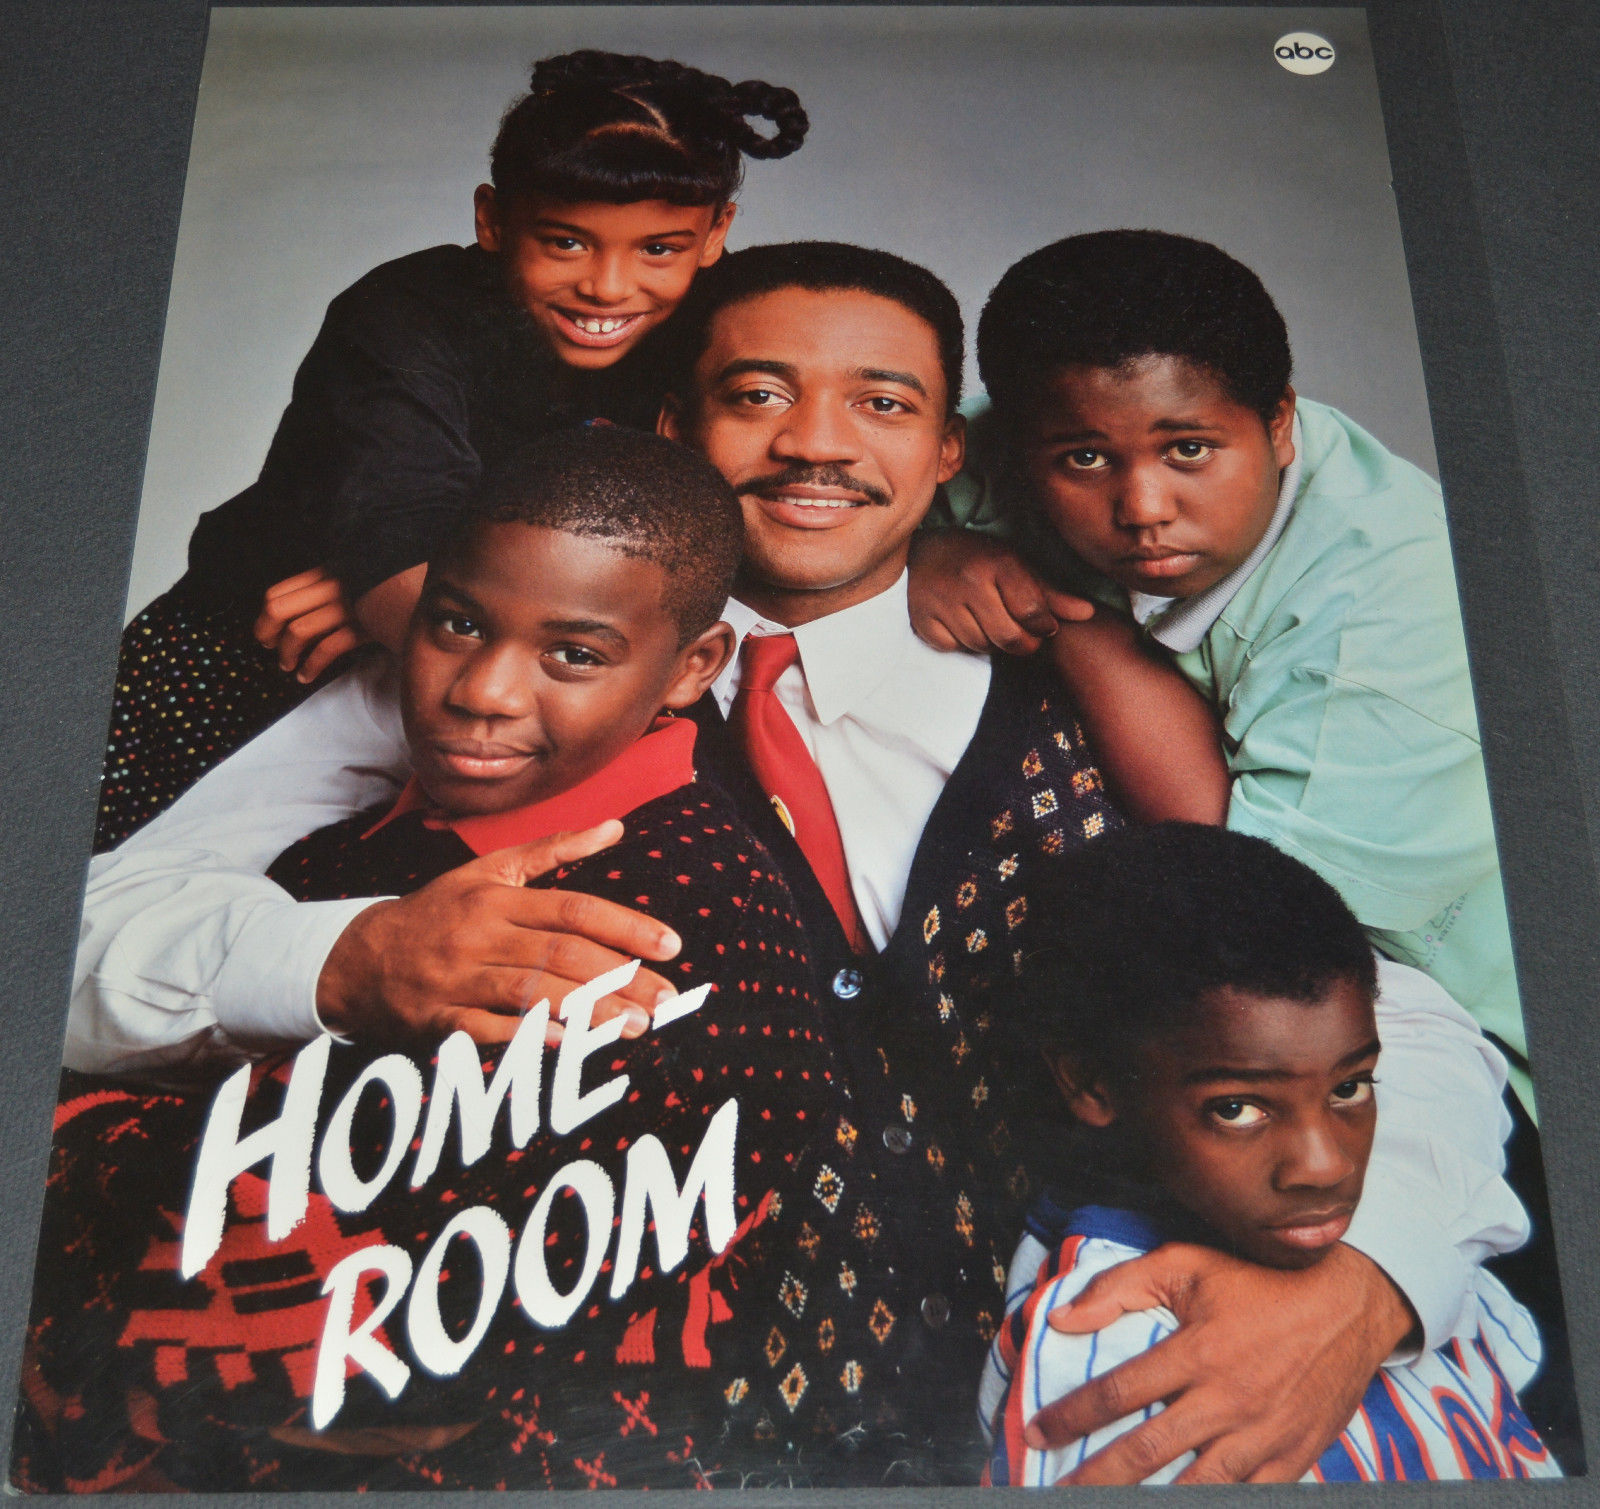 HOME_ROOM_1989_ORIGINAL_25x33_PROMOTIONAL_POSTER_DARRYL_SIVAD_ABC-TV_COMEDY_